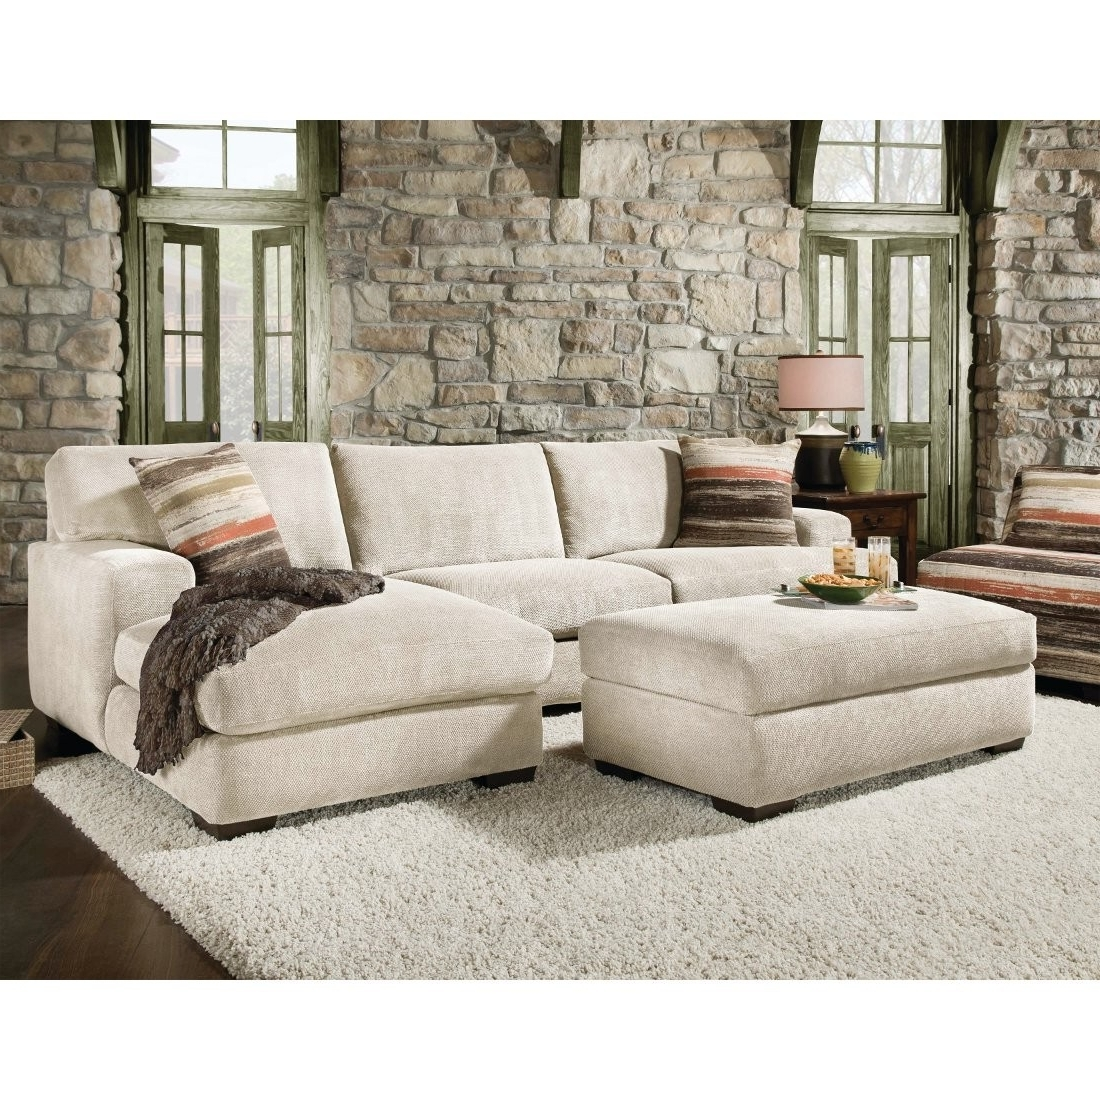 Newest Sectionals With Oversized Ottoman Inside Cozy Oversized Sectional Sofa — Awesome Homes : Super Comfortable (View 7 of 15)